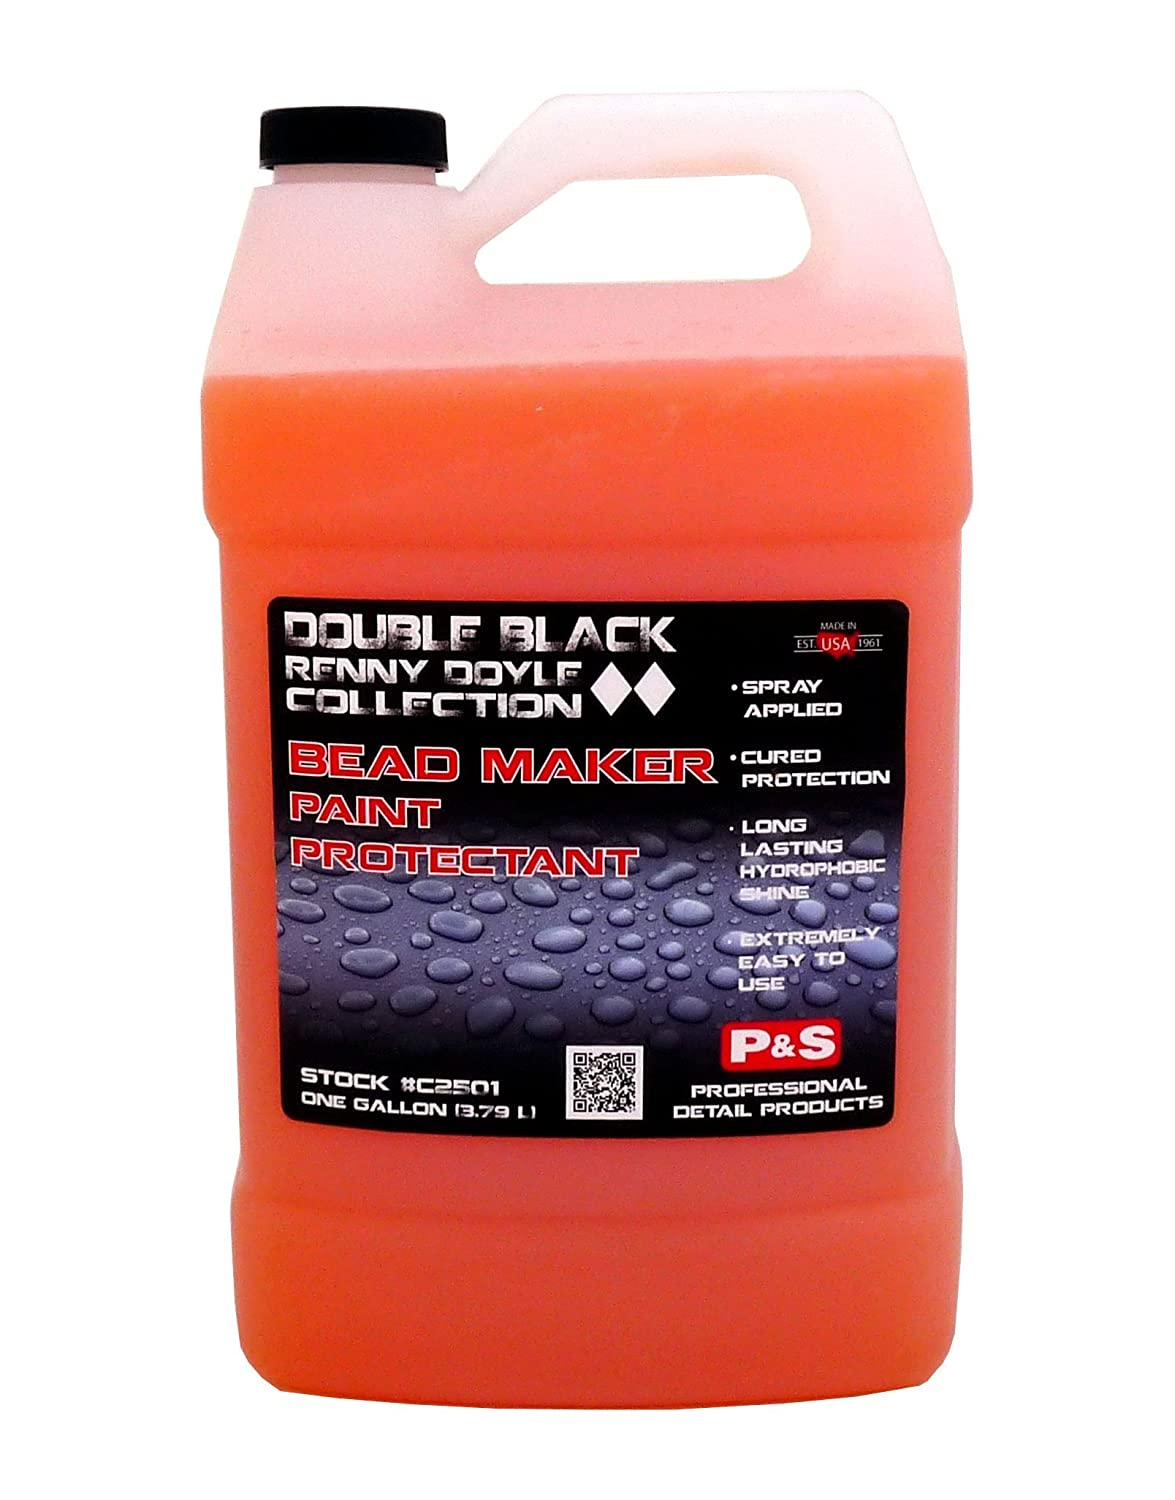 P&S Detailing Products C2501 - Bead Maker Paint Protectant ( 1 Gallon ) P&S Inc